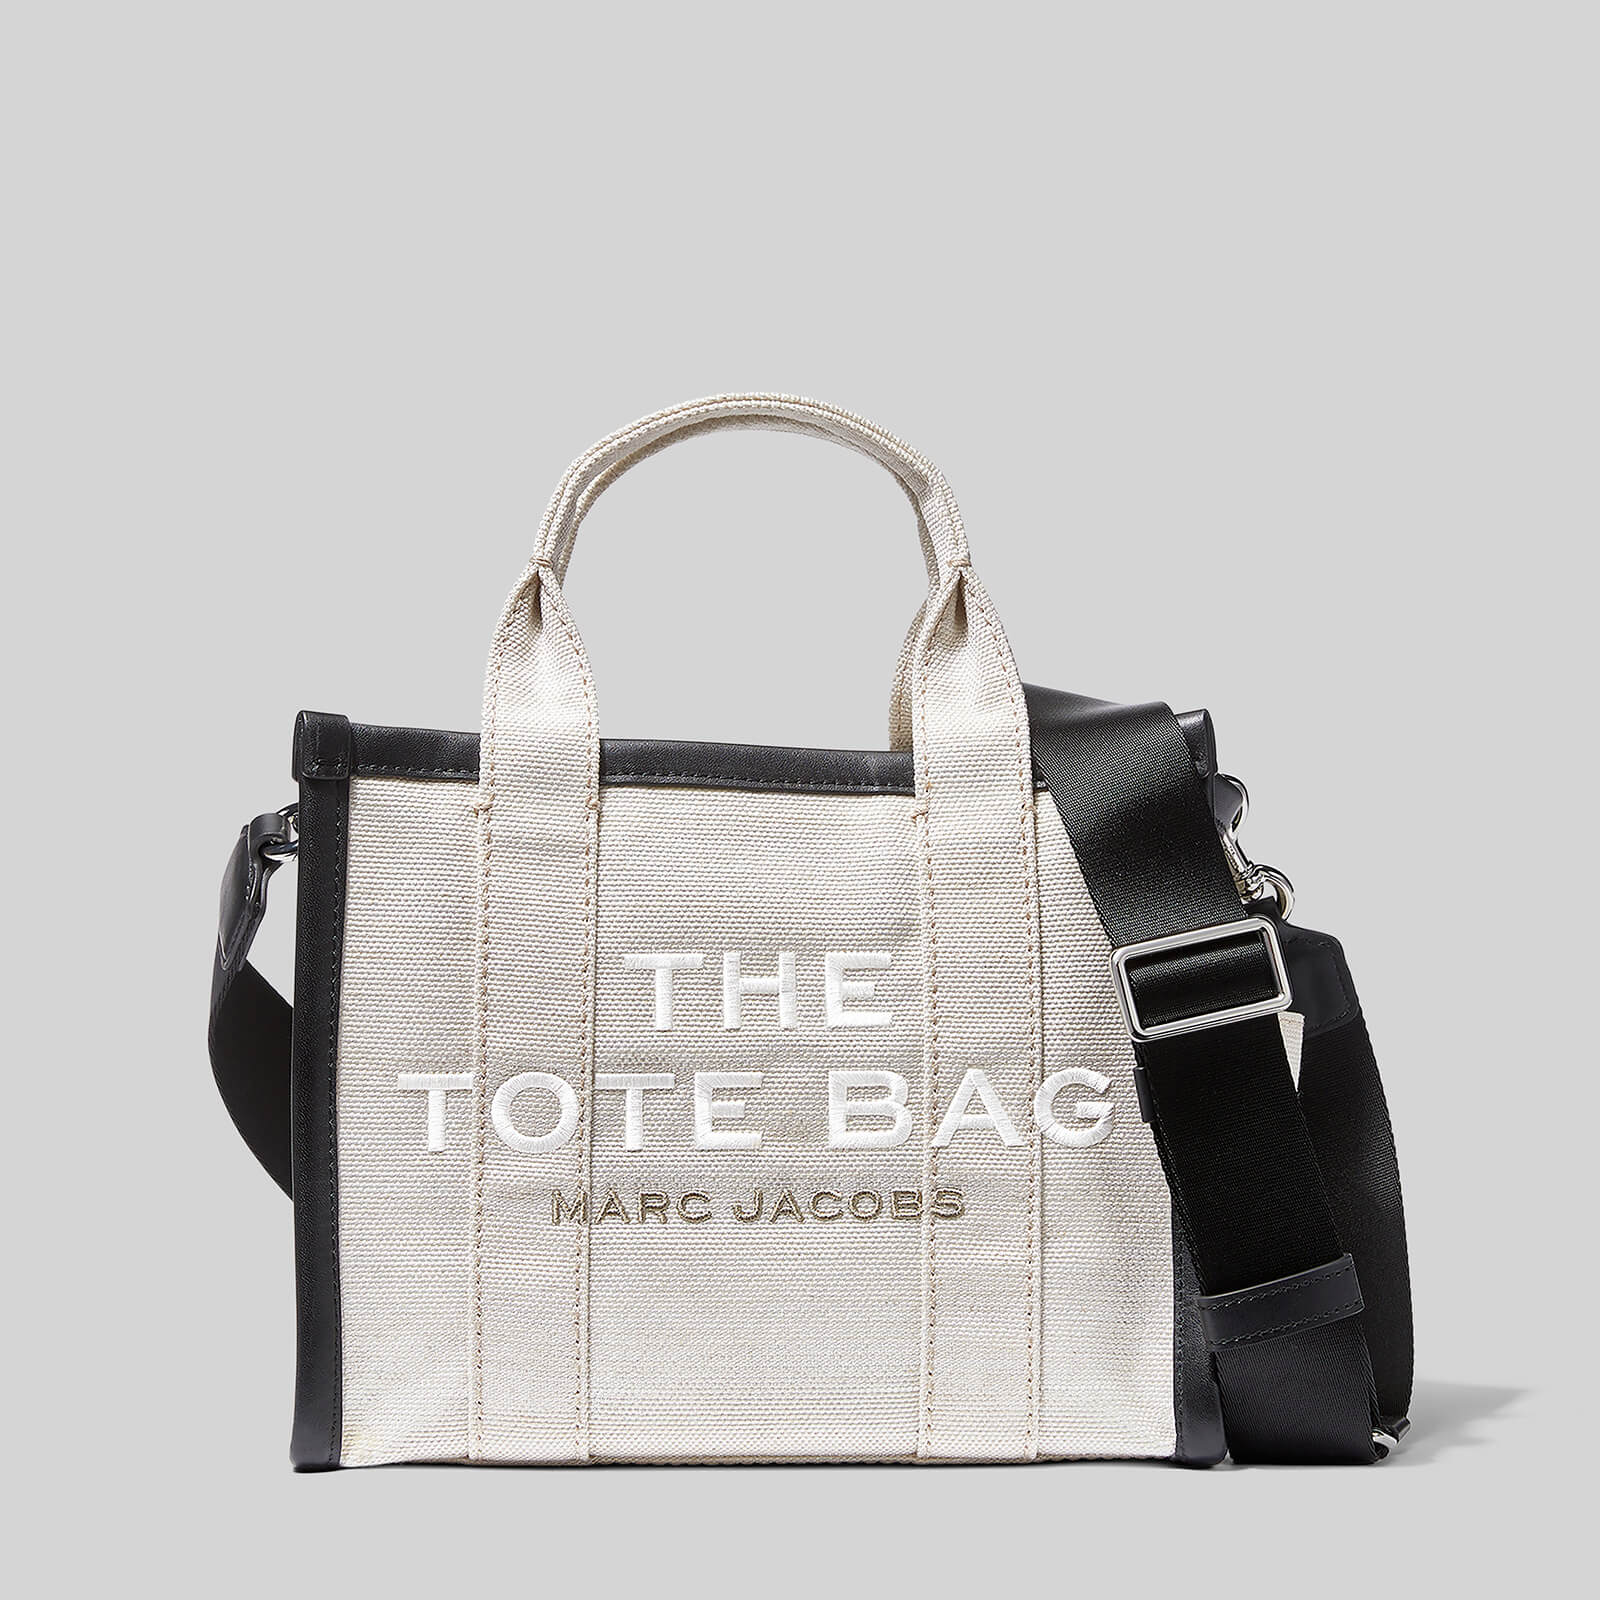 Marc Jacobs Women's The Small Tote Bag - Natural